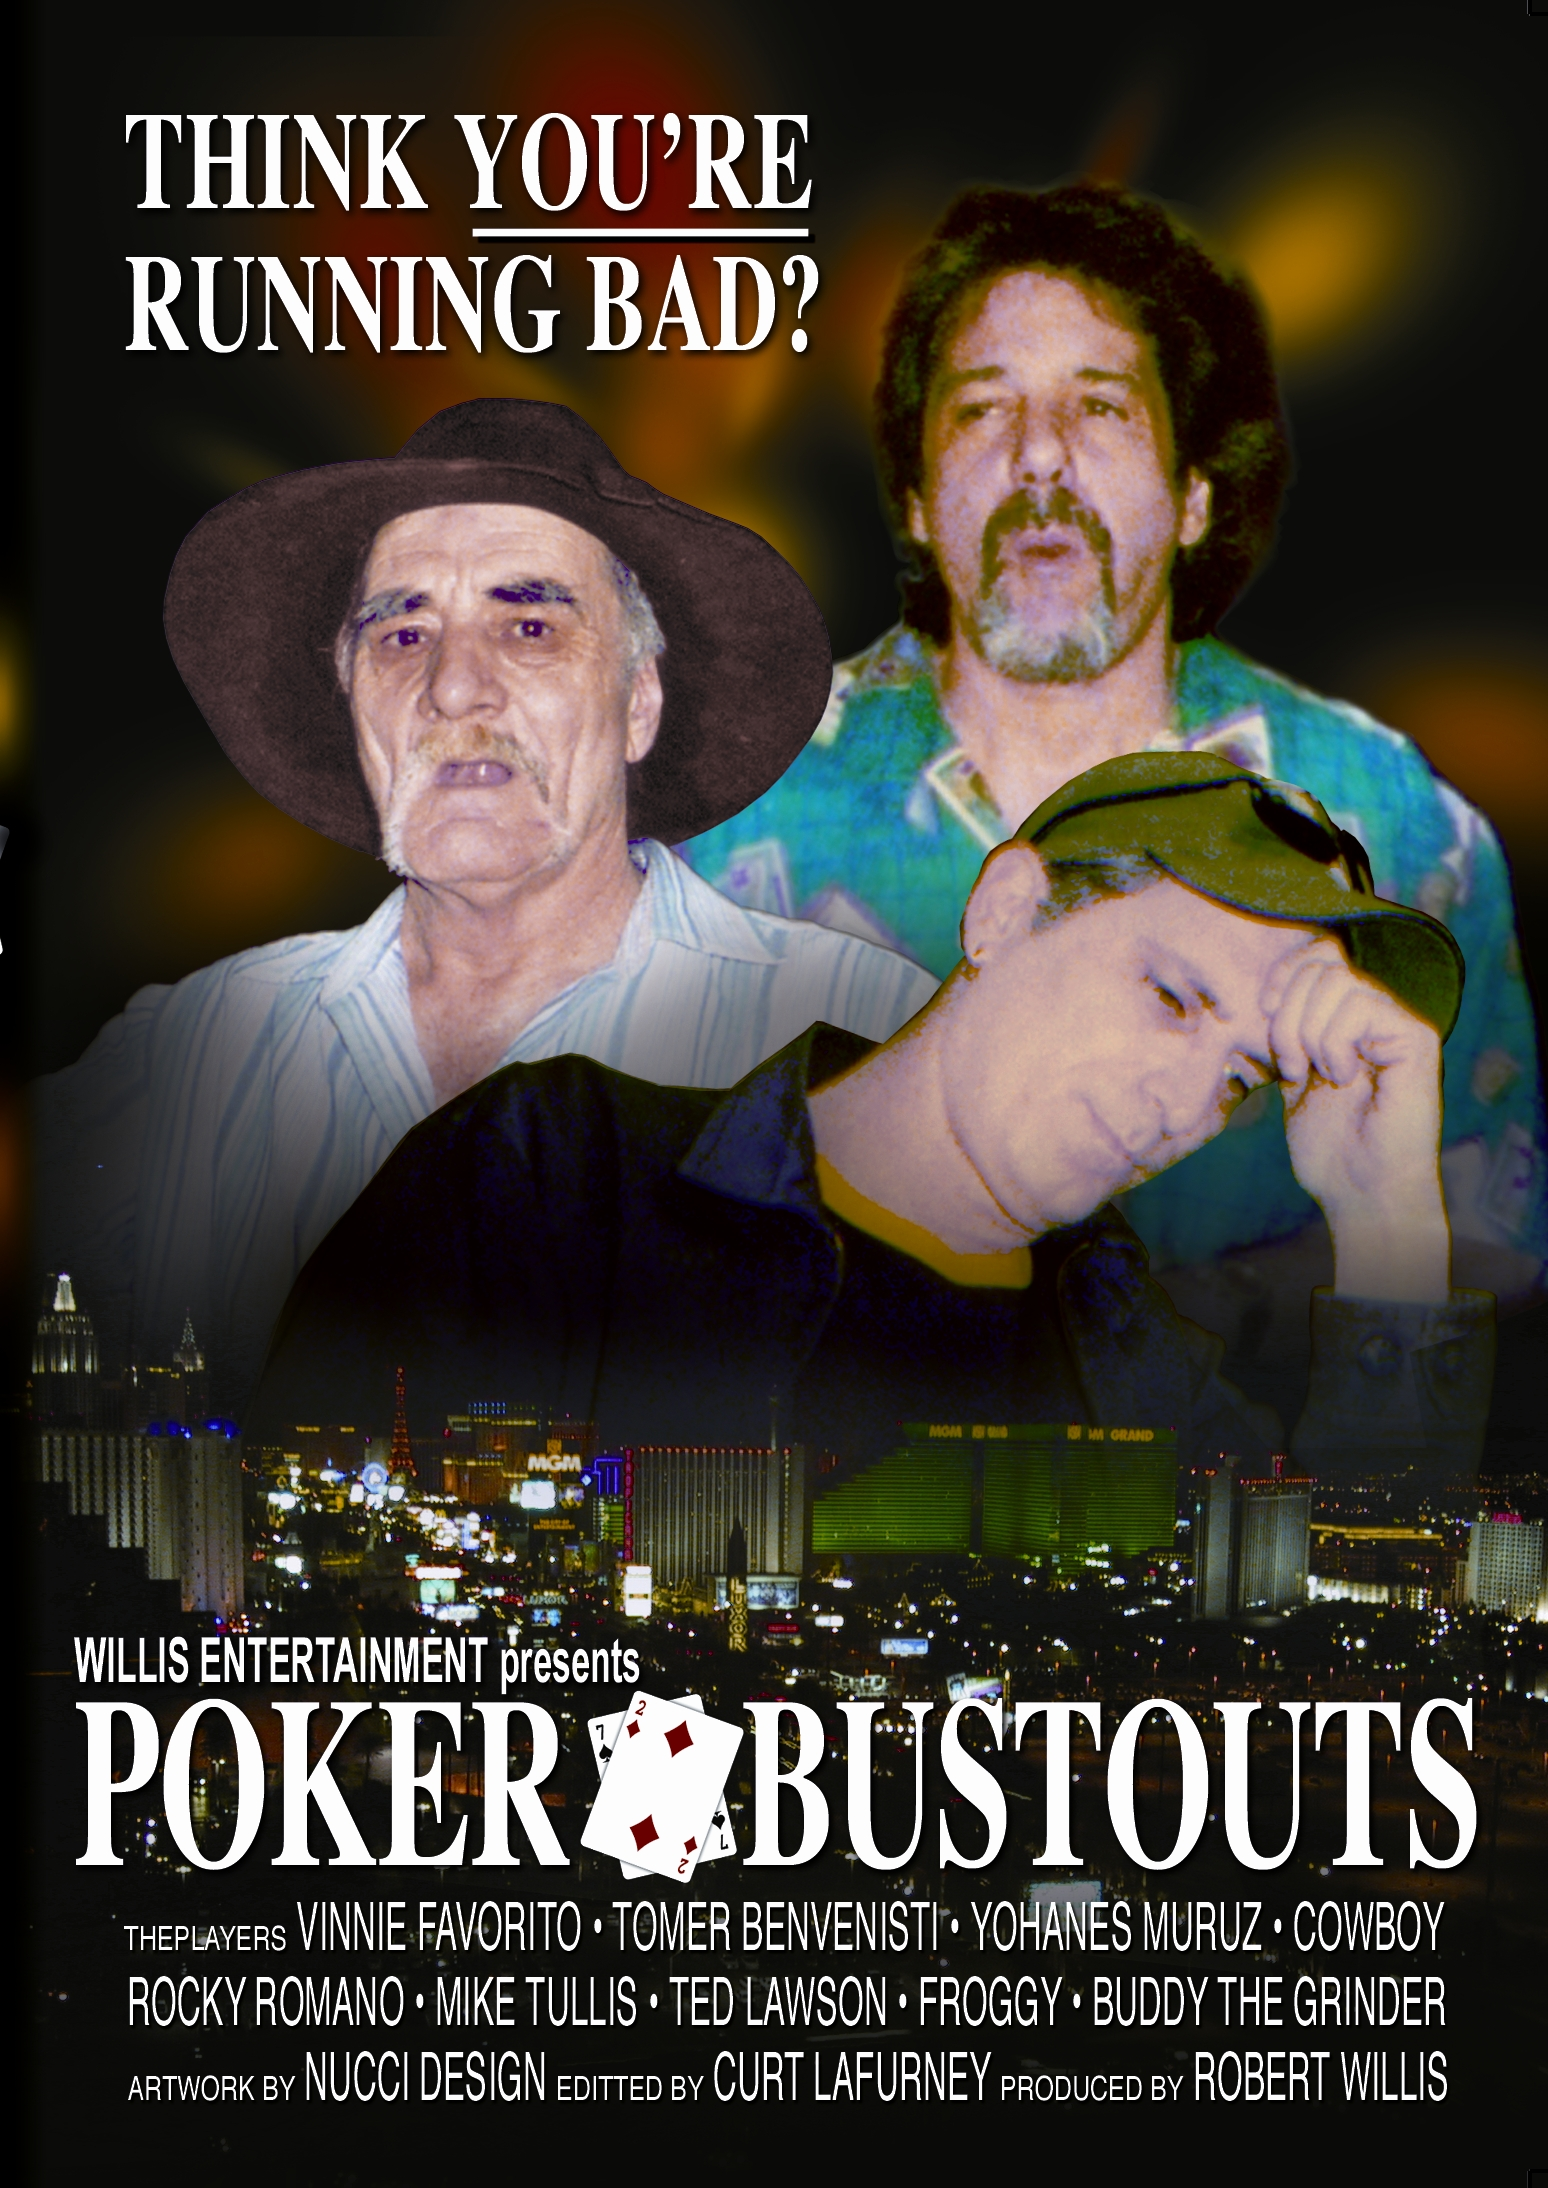 Poker bustouts documentary 2 5 omaha poker strategy pot limit